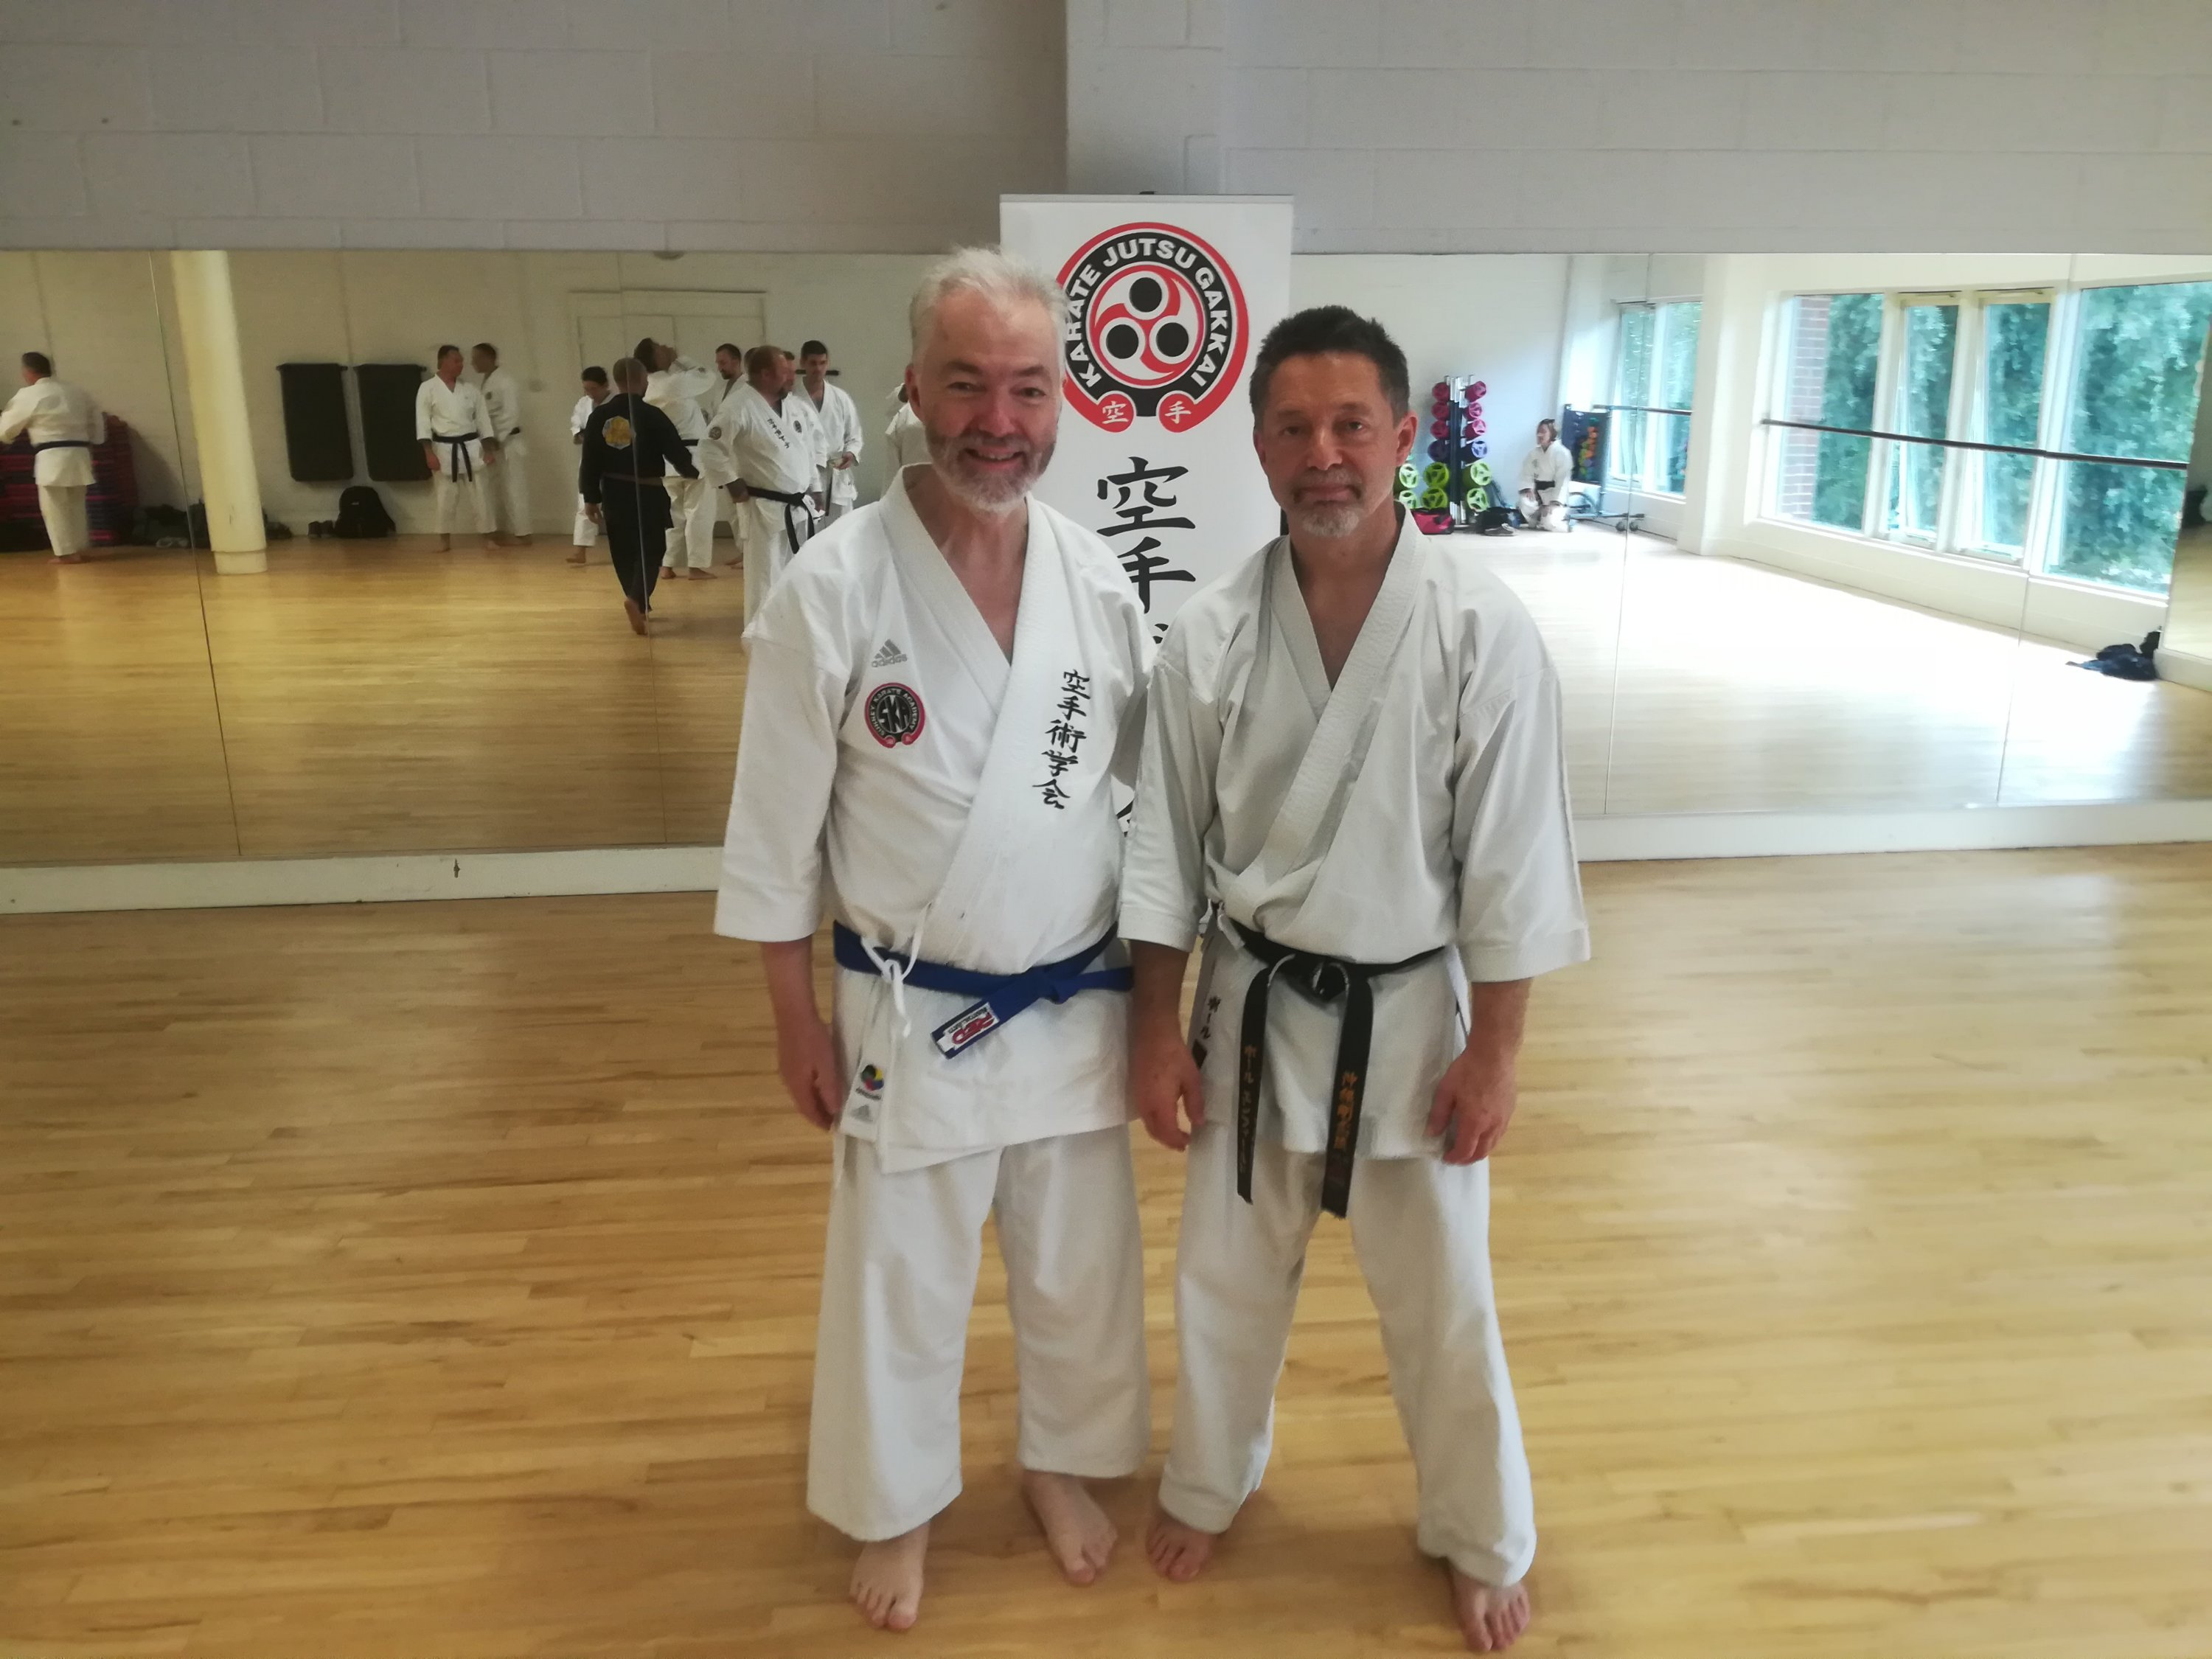 Andy Lovegrove and Kyoshi Paul Enfield